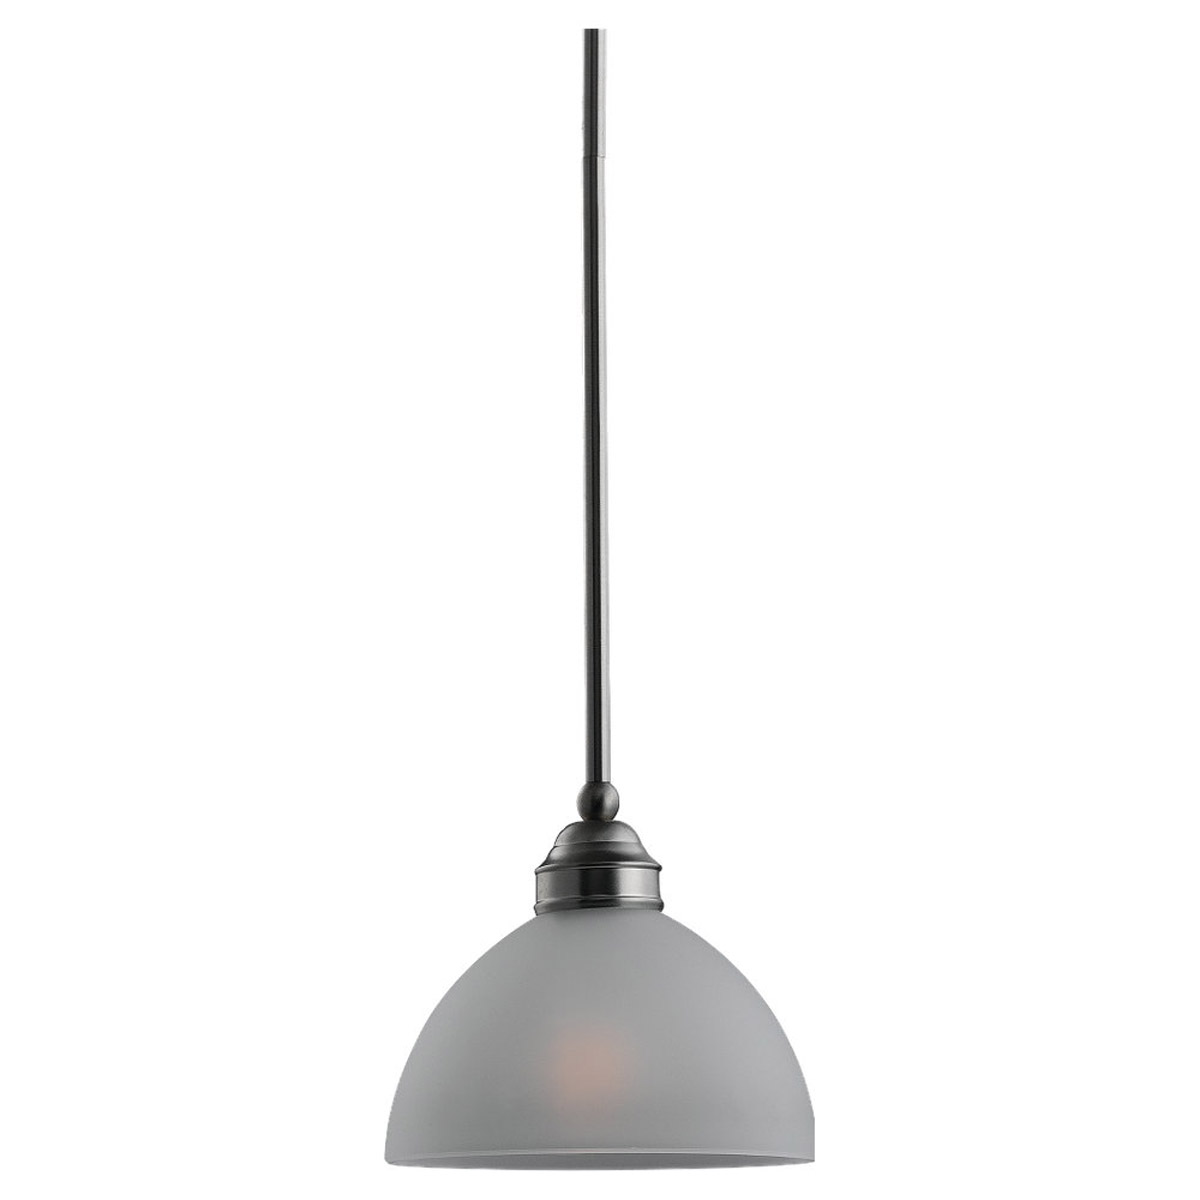 Sea Gull Lighting Linwood 1 Light Mini Pendant in Brushed Nickel 61225-962